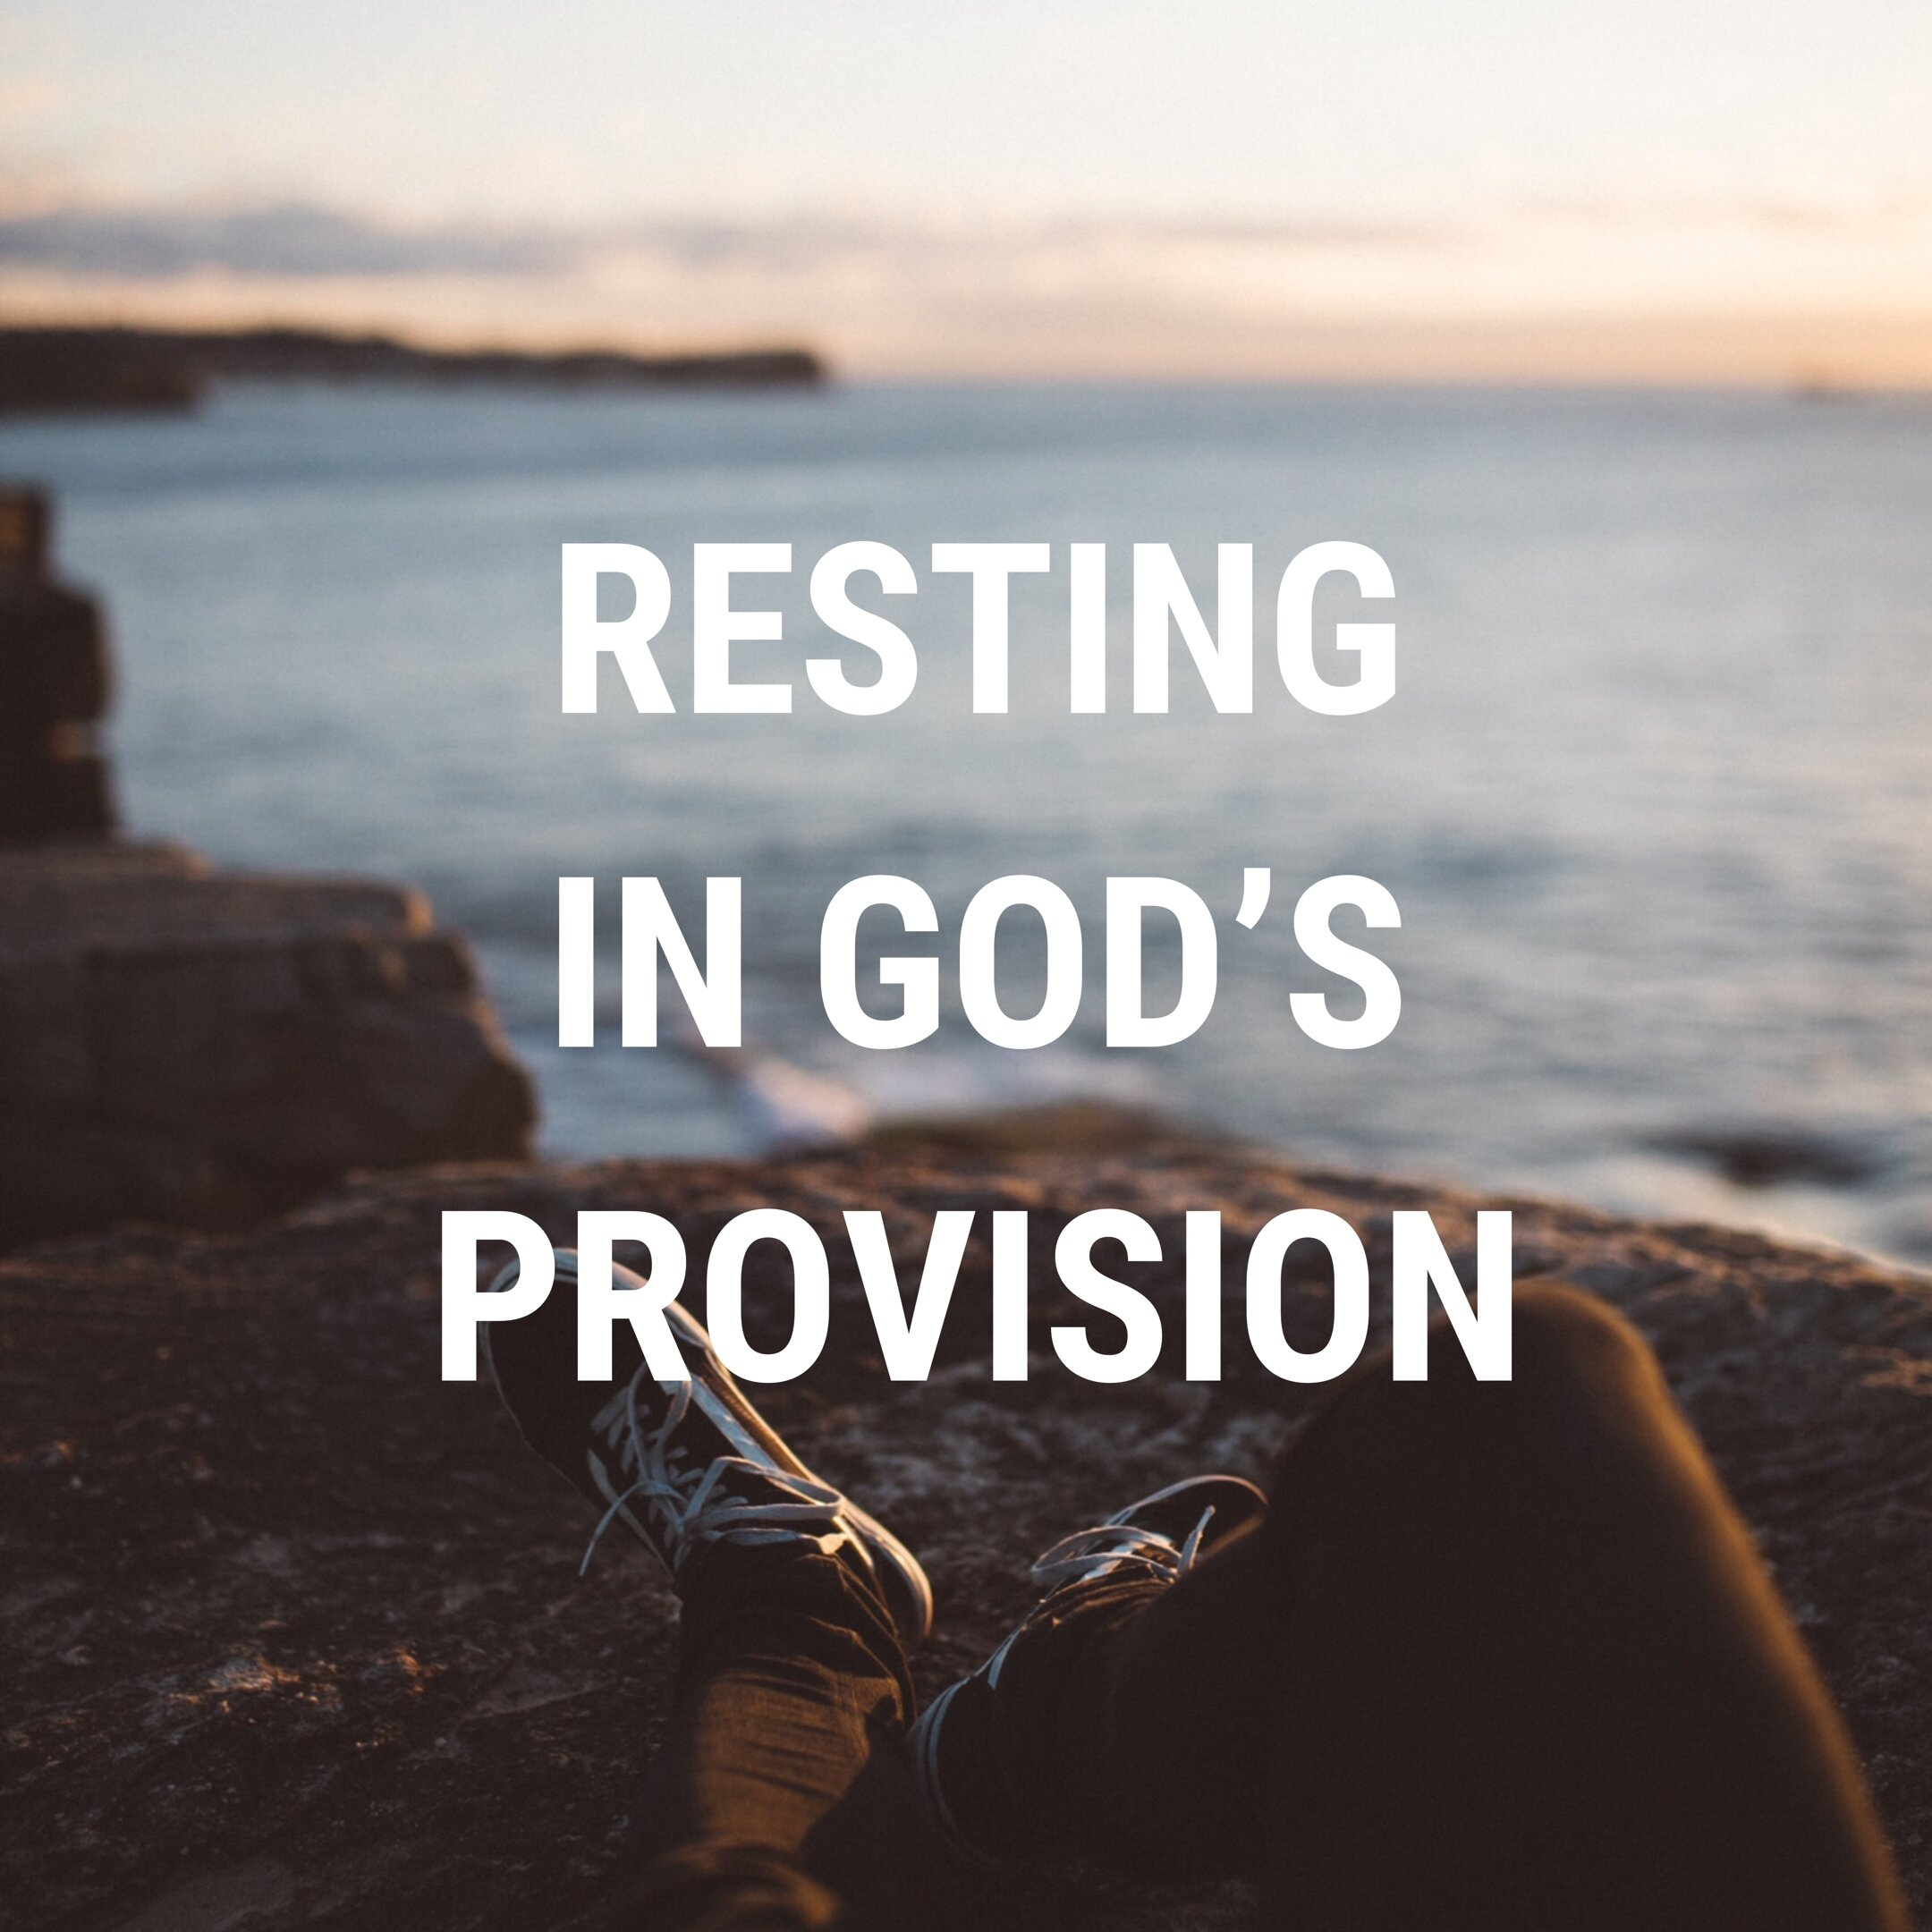 Resting in God's Provision | Exodus 17:1-7 - As the Summer rush began to wane, and the next season of study grew closer, Sojourn Church took a month-long pause of operation to consider what godly rest looks like. We even took a week off to actively practice the idea of godly rest and made space for a local concert that some local church's had organized for the community. This sermon comes as part one of two teachings given during this pause. Exodus 17 might not come to mind at first when initially considering places of great rest in the Bible. By this point the people of Israel are all but totally stranded in the desert and on the verge of insurrection against Moses and the God who dragged them out of their comfy homes in Egypt. The people were so turned off from the environment around them that they failed to put their trust — that is, their rest — in the God who had broken them out of slavery to bring them into His promised land with him. This passage, then, serves as a potent object lesson in trusting the Lord for the provision we need, in order to fully rest in our lives.